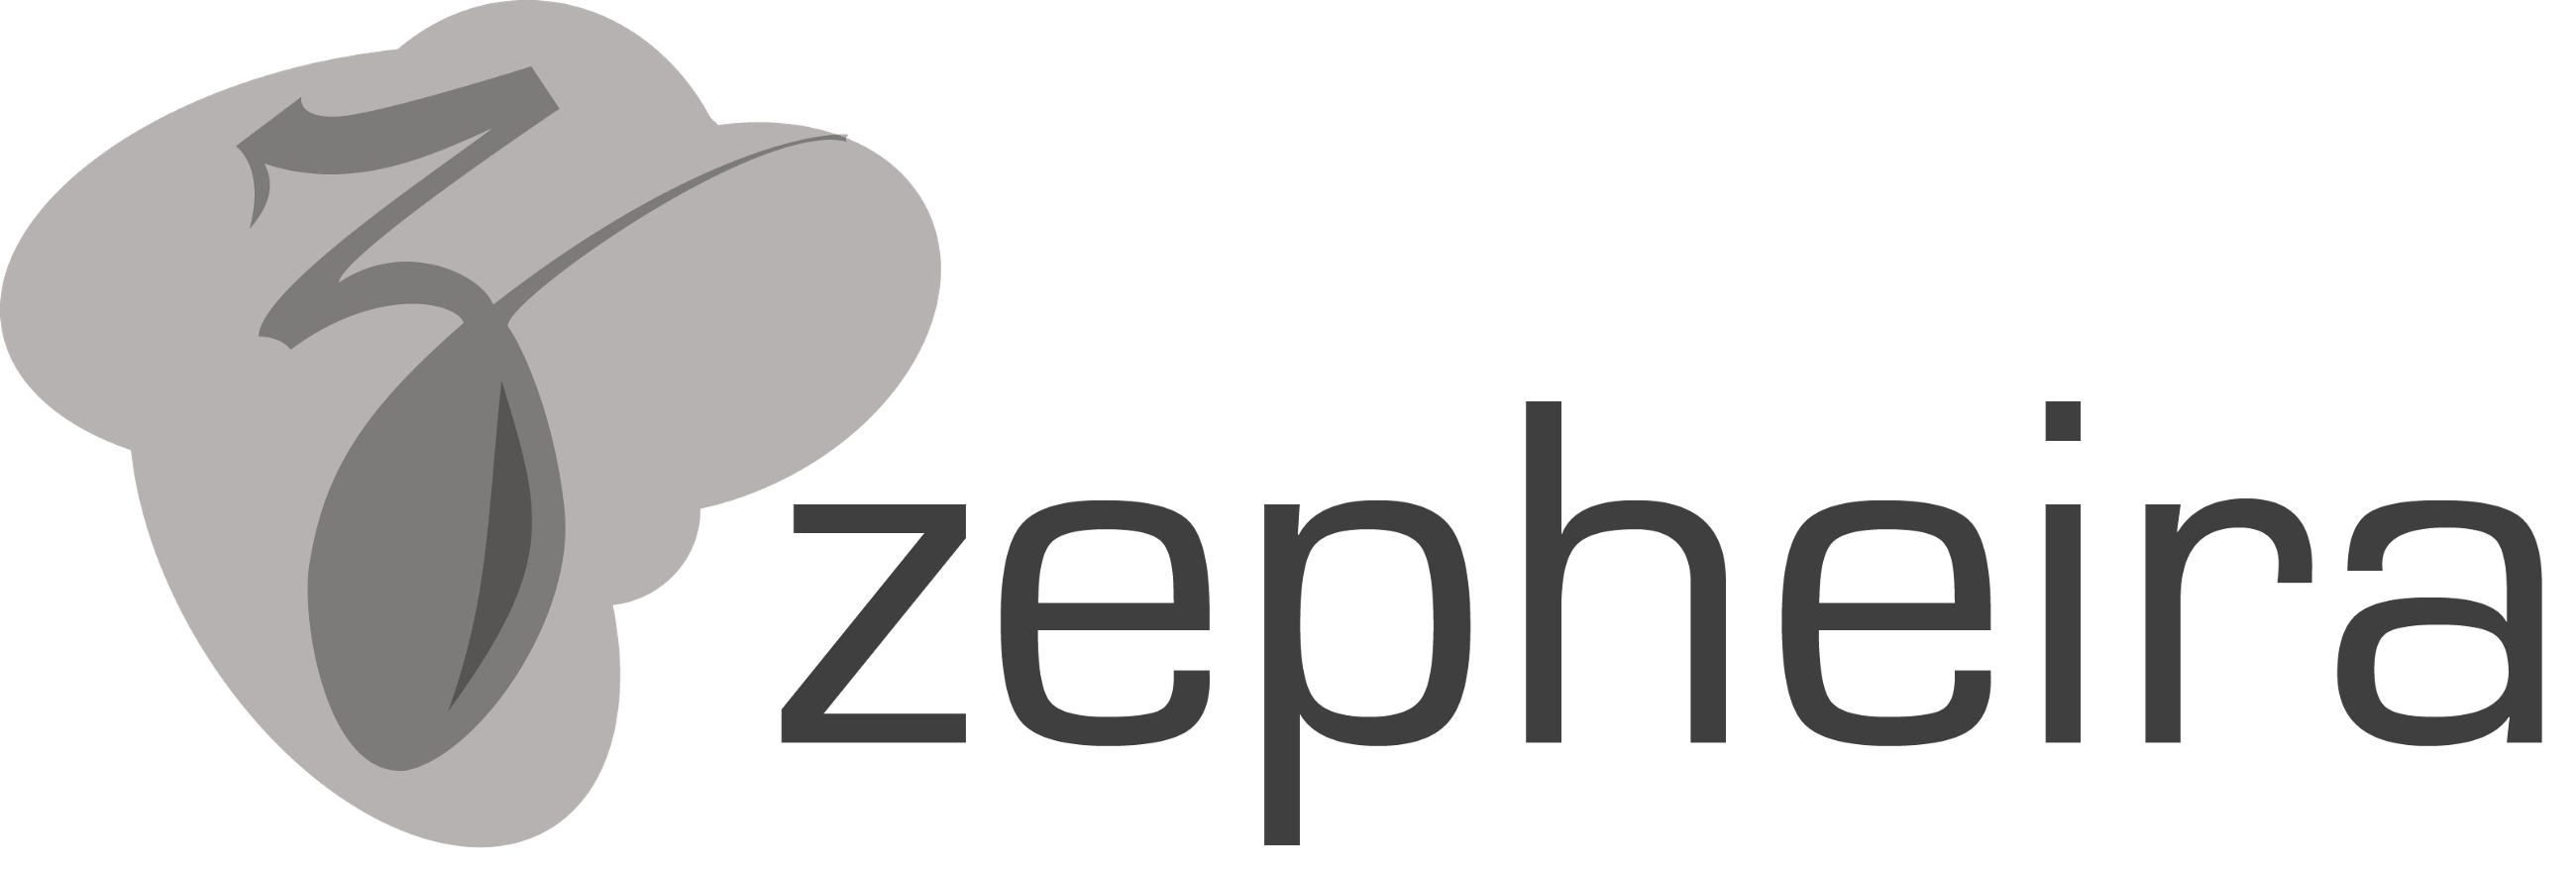 Qatar National Library (QNL) Signs with Zepheira to Bring